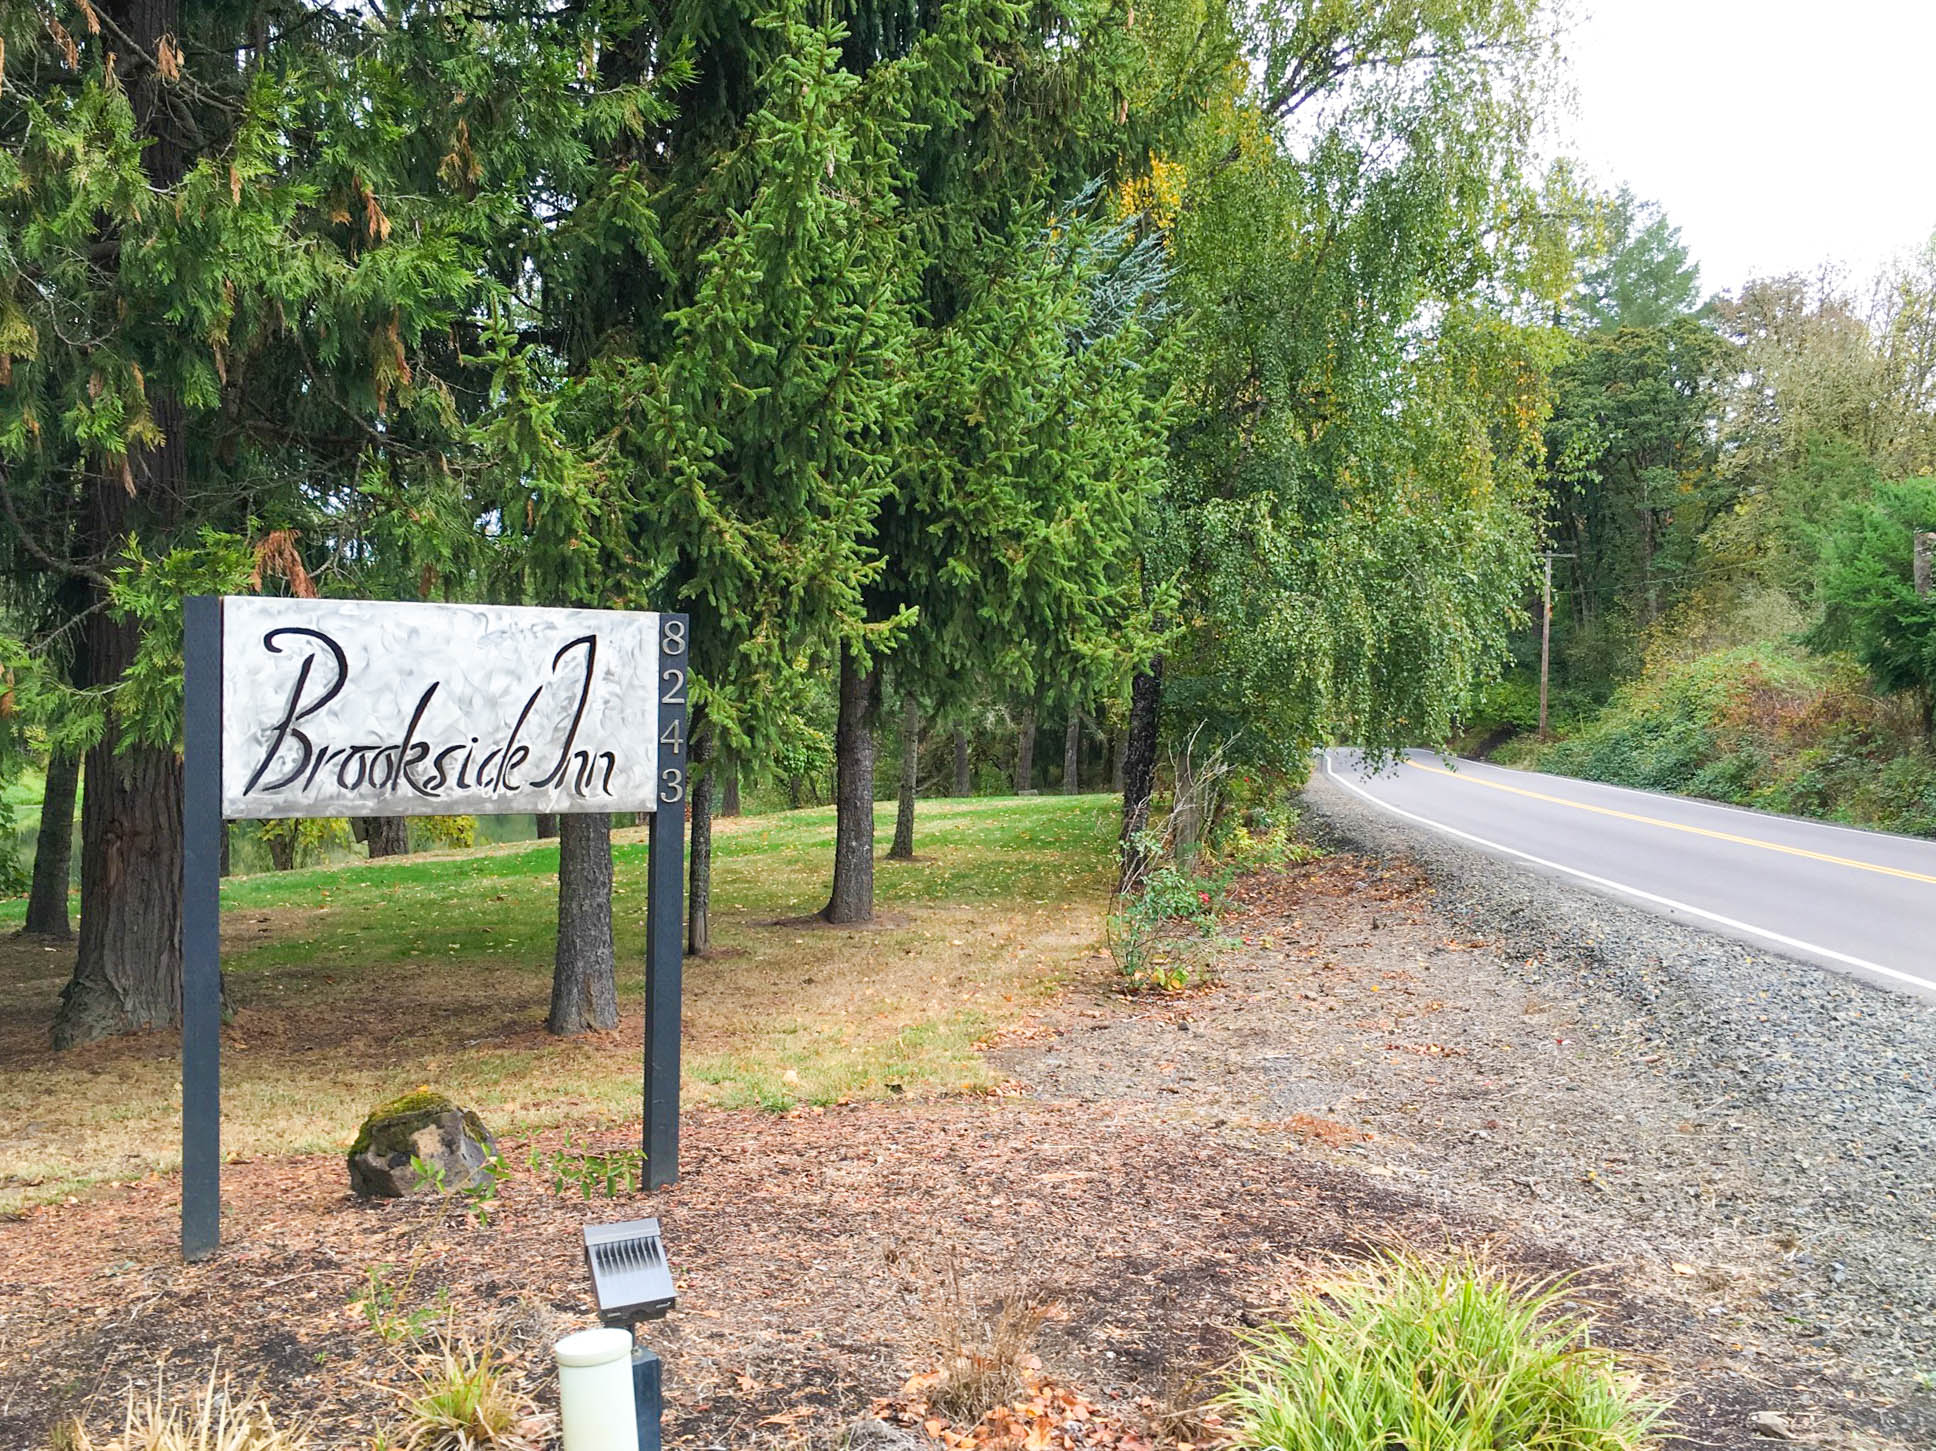 Oregon Wine Country Escape: The Brookside Inn